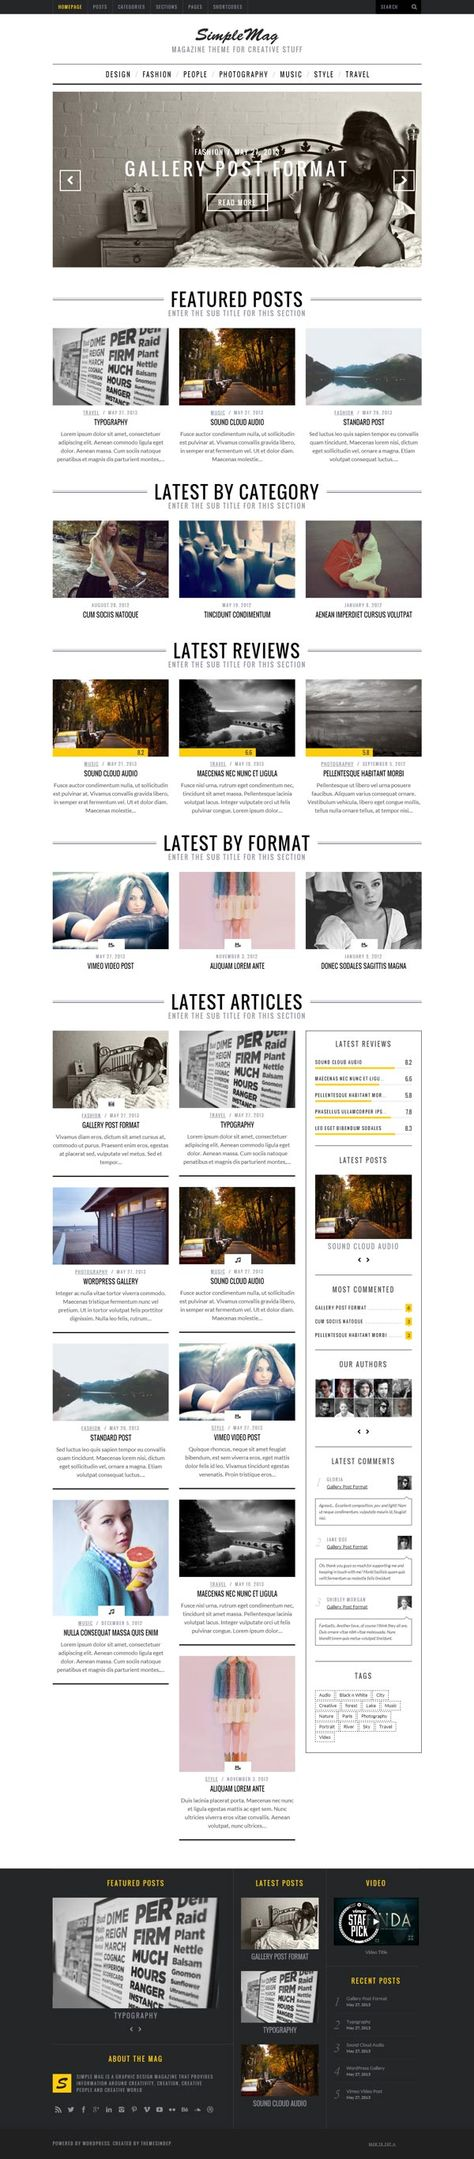 Simple Mag – Blog WordPress Theme for Online Magazines